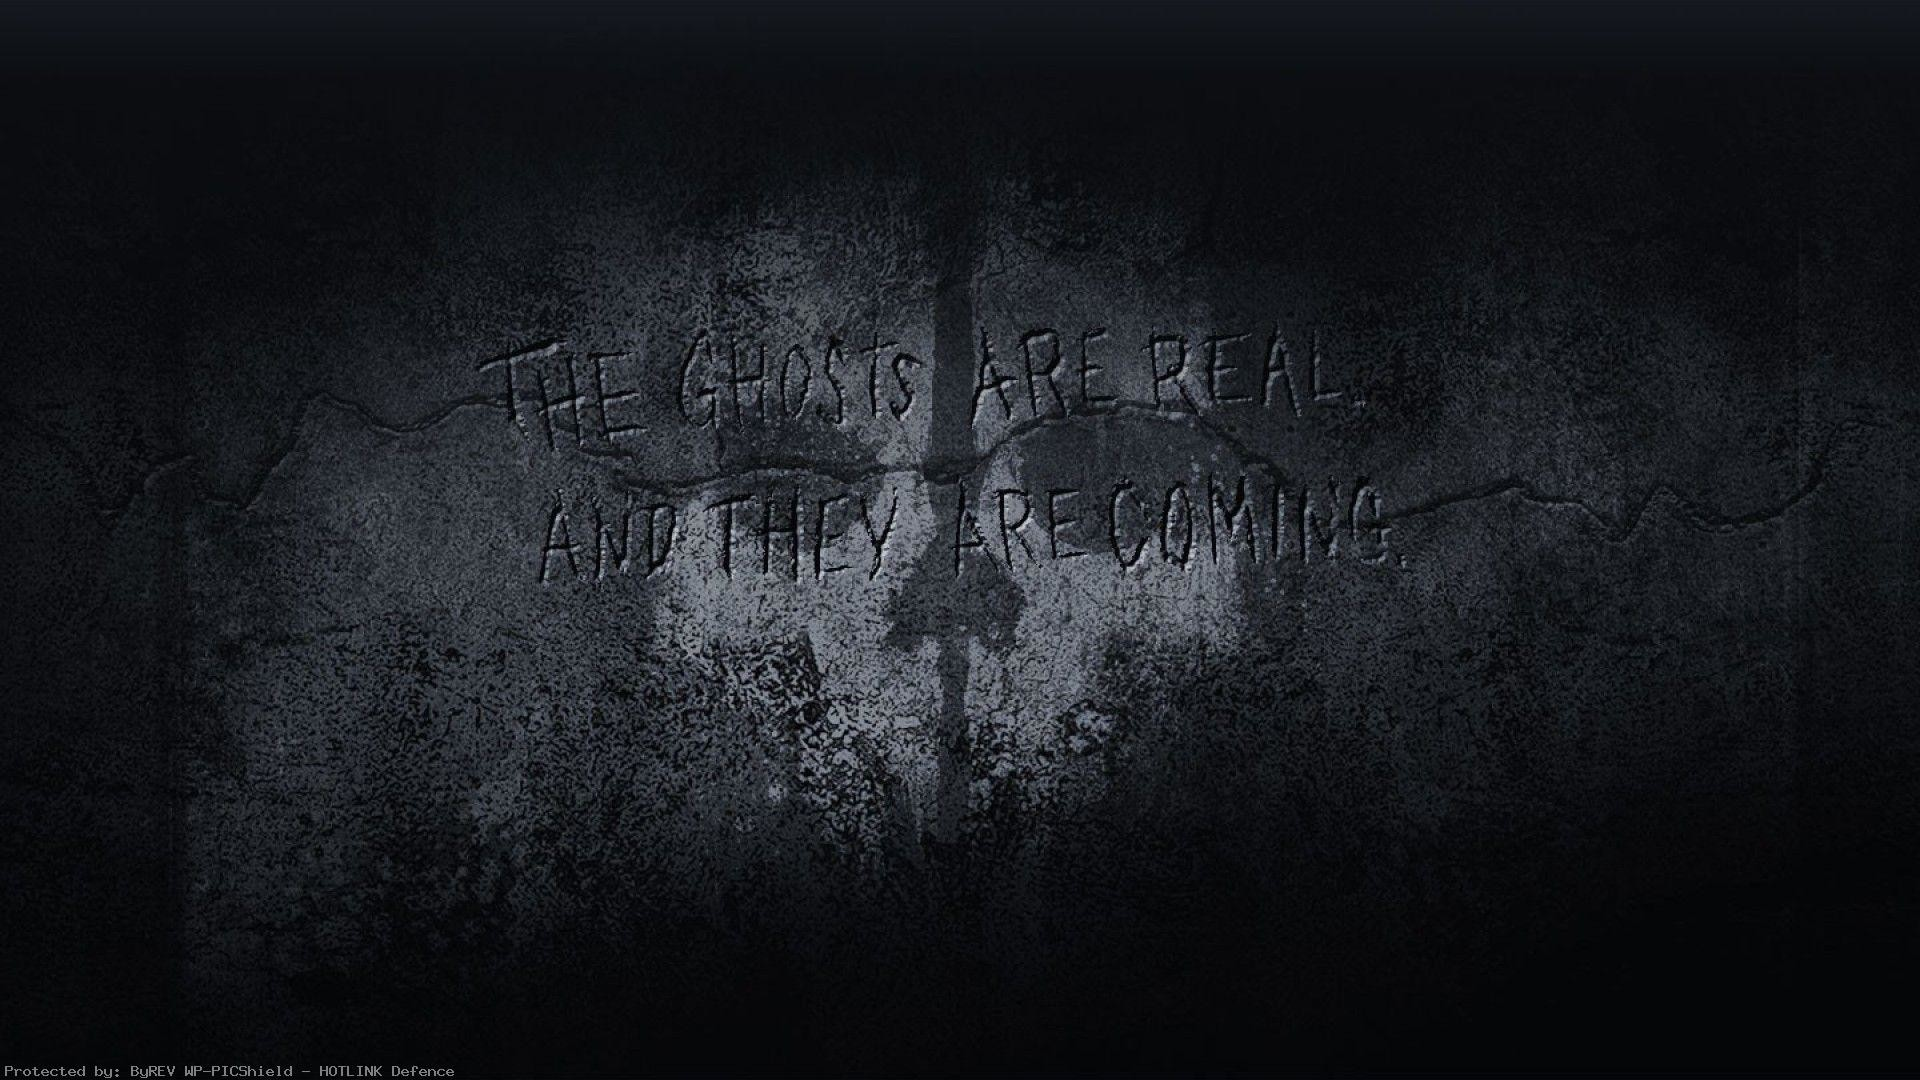 call of duty ghosts wallpaper – live wallpaper HD Desktop Wallpapers. Call  Of Duty Ghosts Wallpaper Live Wallpaper HD Desktop Wallpapers